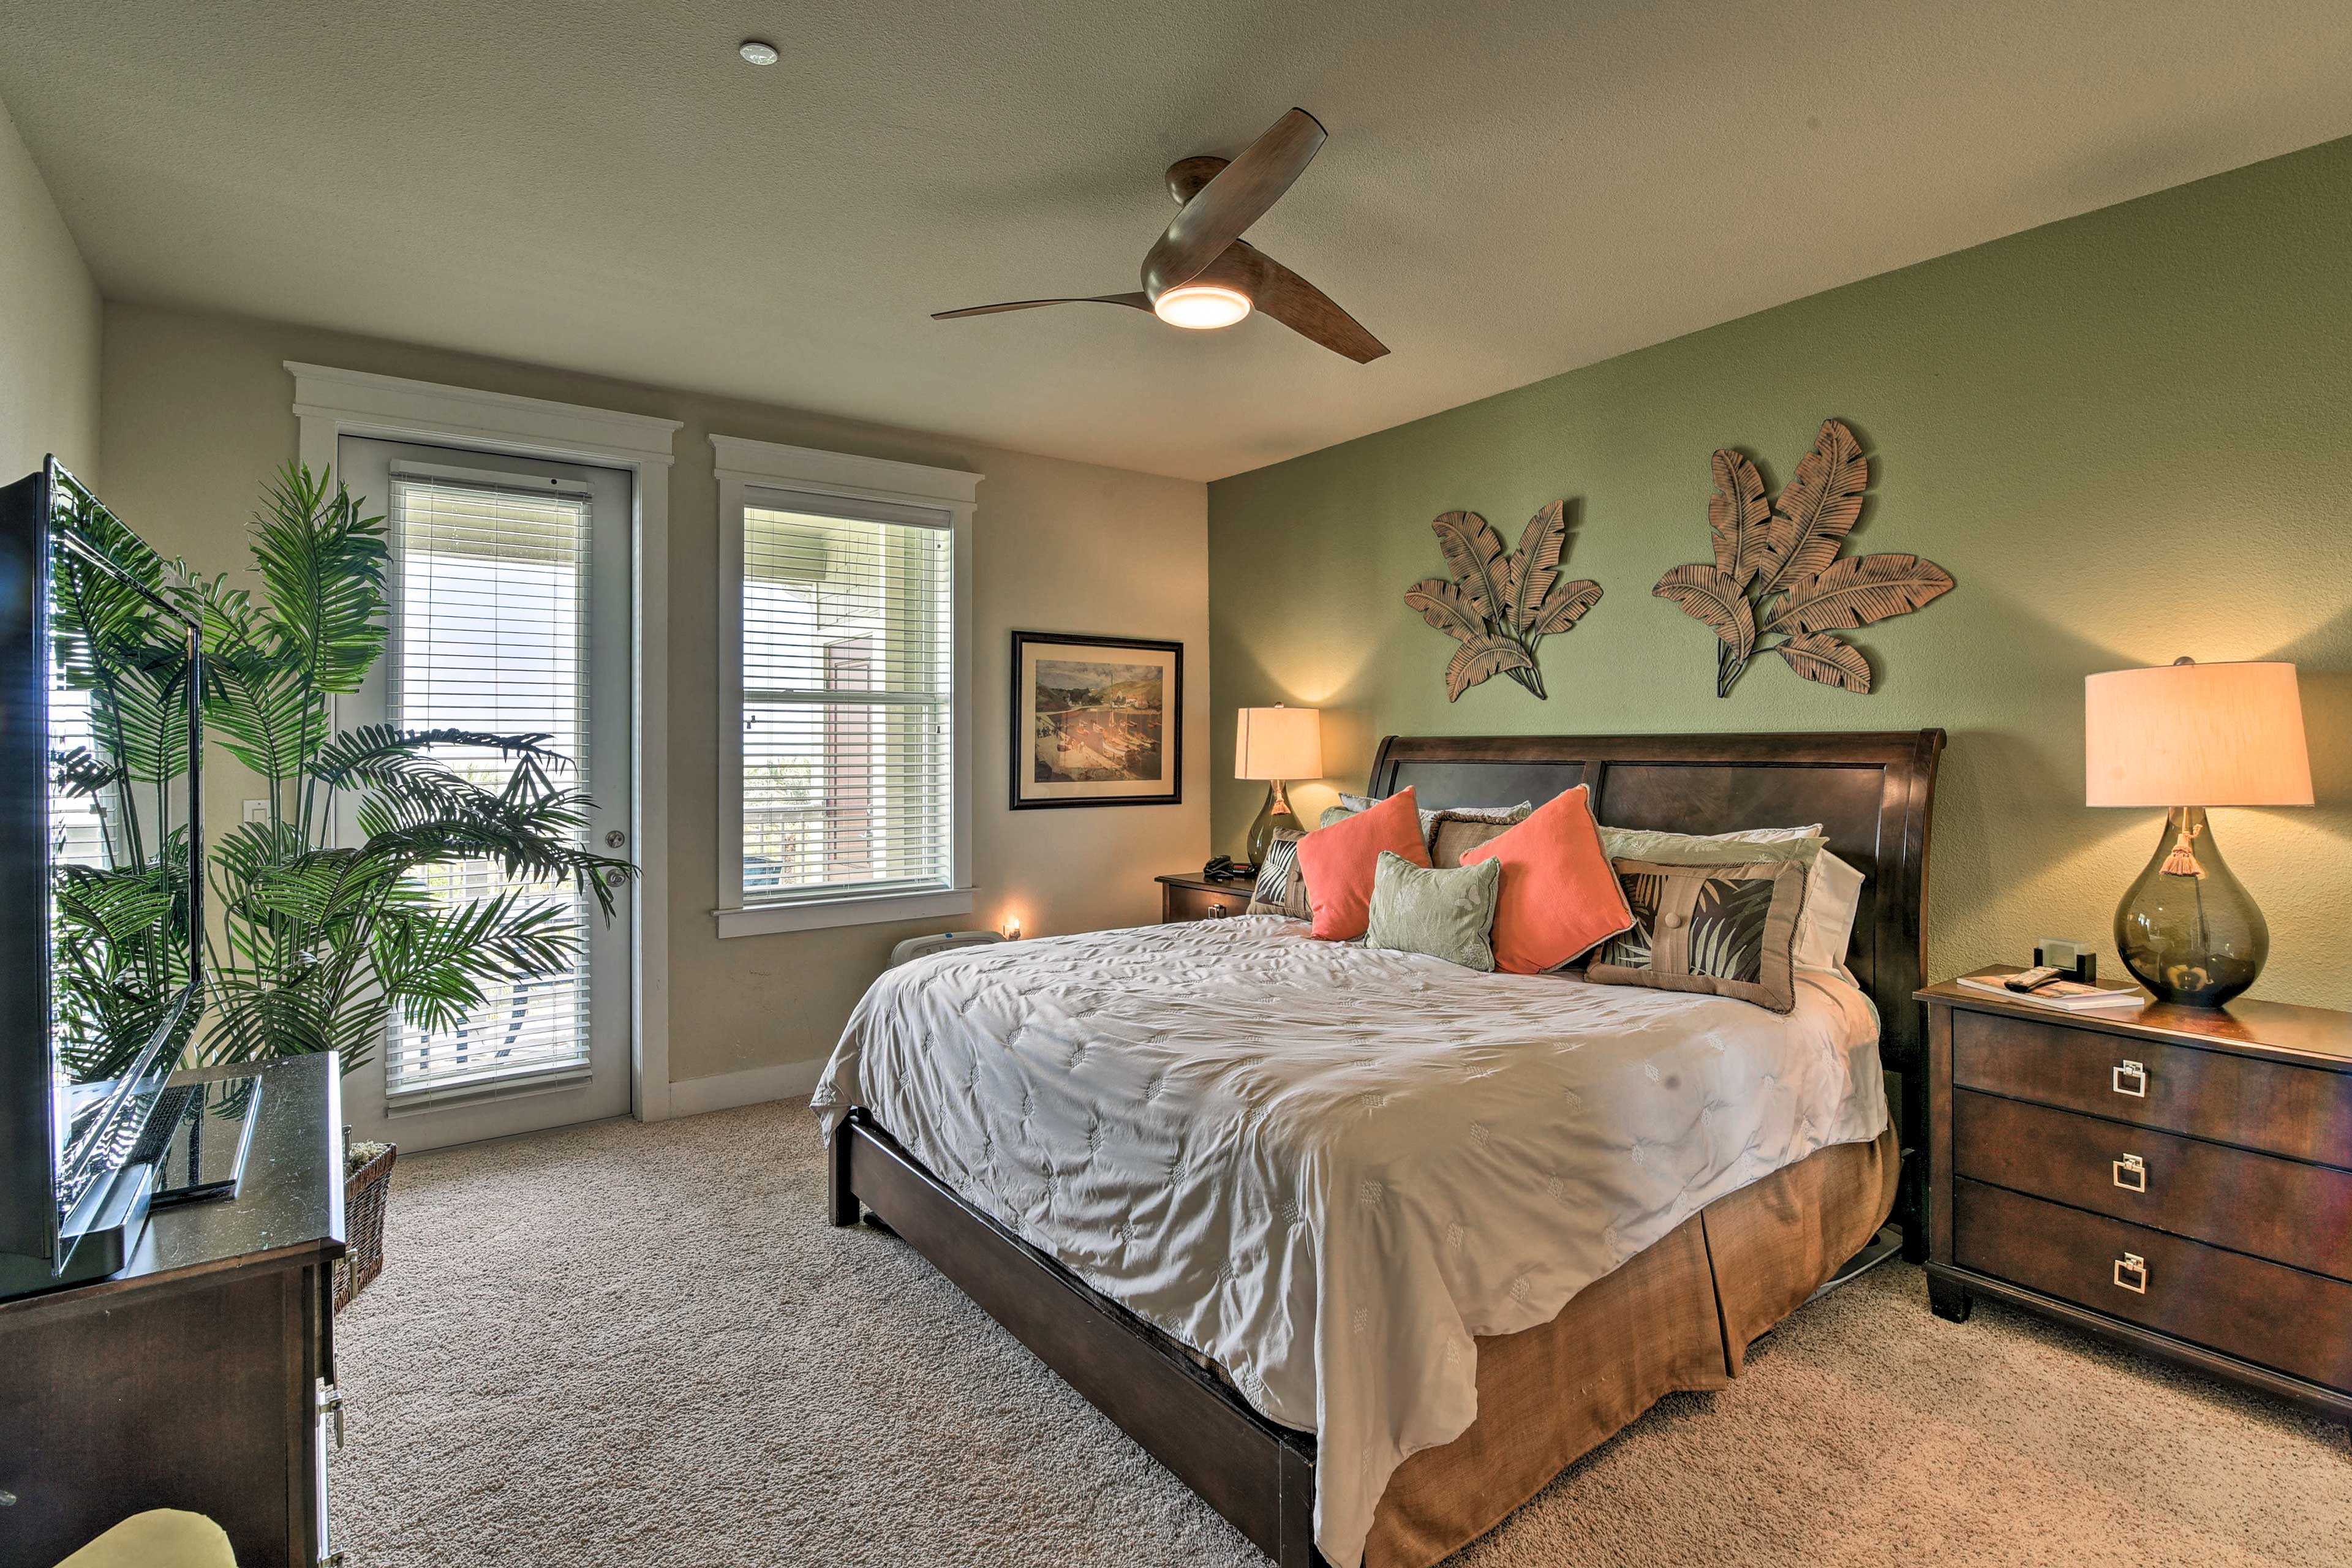 The master bedroom features access to the balcony and an en-suite bathroom.